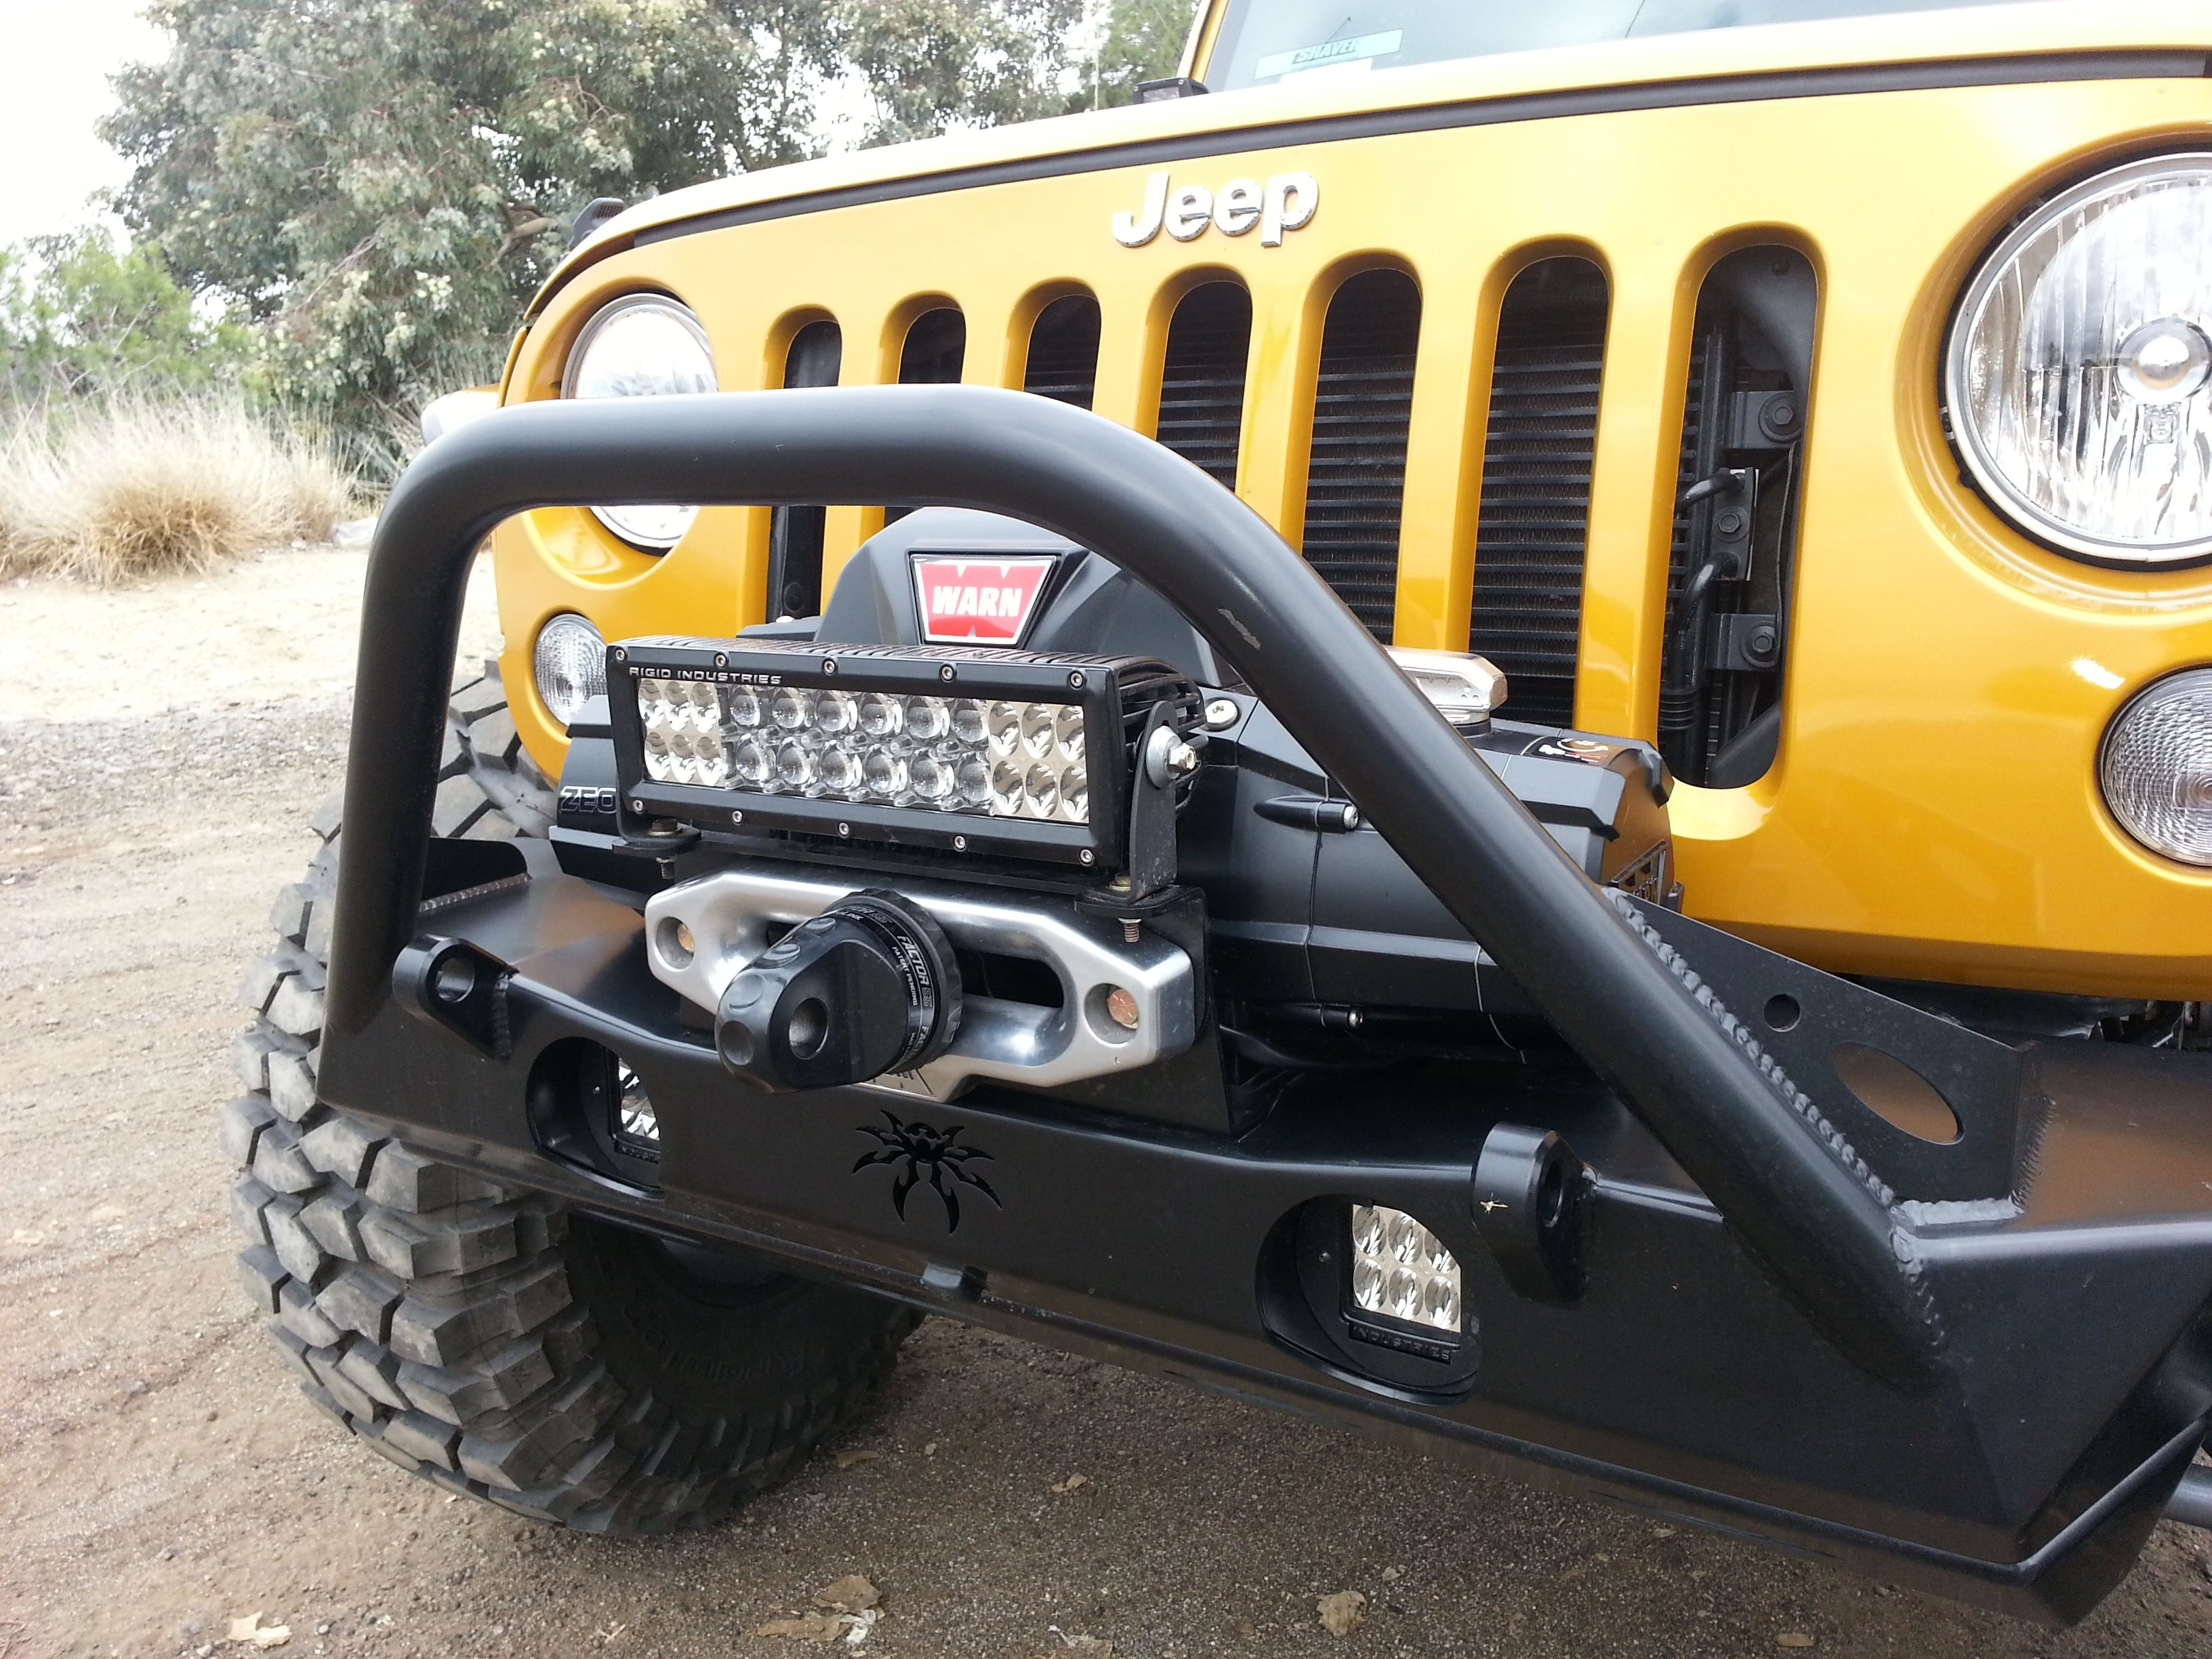 Jeep jk with poison spyder front bumper with a warn winch and mini jeep jk with poison spyder front bumper with a warn winch and mini light bar mozeypictures Images